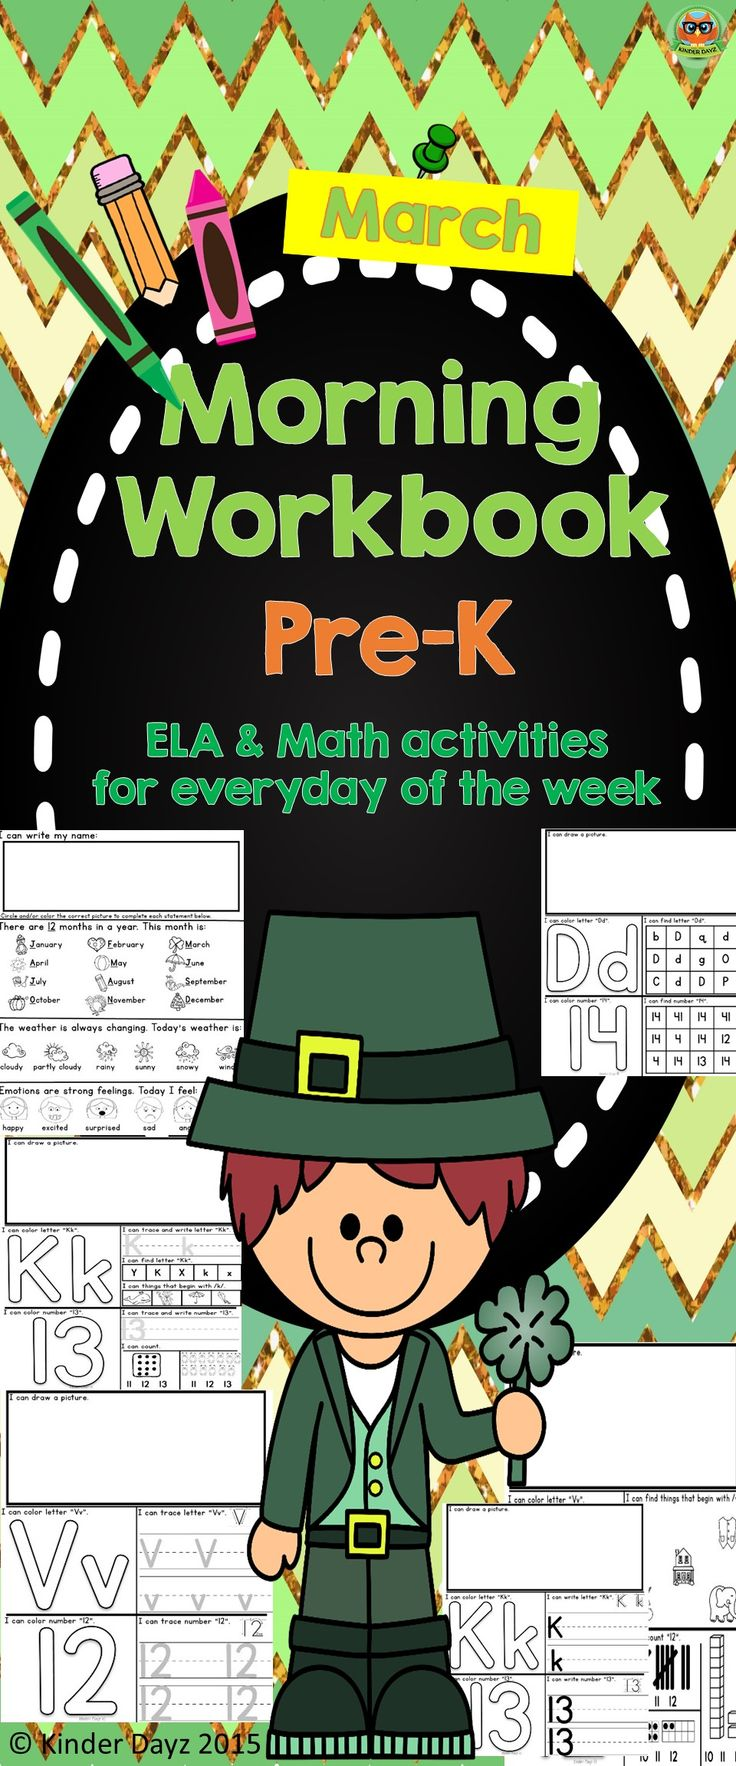 This morning's workbook was created for pre-k and/or kindergarten students. It contains 44 pages (2 pages every day) PLUS extras: St. Patrick's Day Book, Clover Color Review and St. Patrick's Themed Graph.